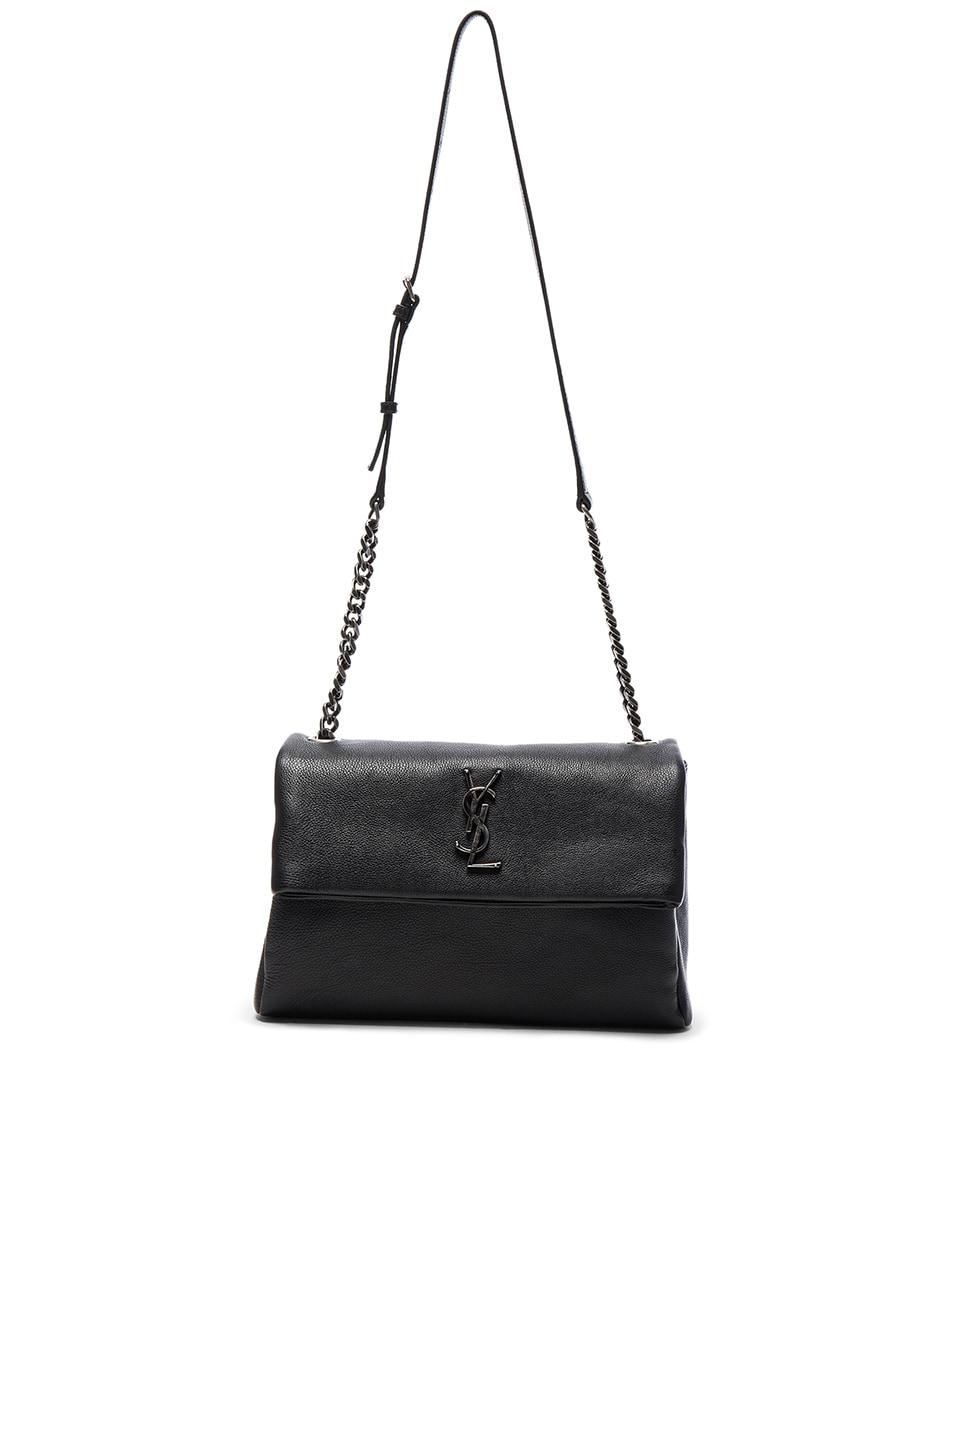 Image 1 of Saint Laurent Medium Monogramme West Hollywood Bag in Black